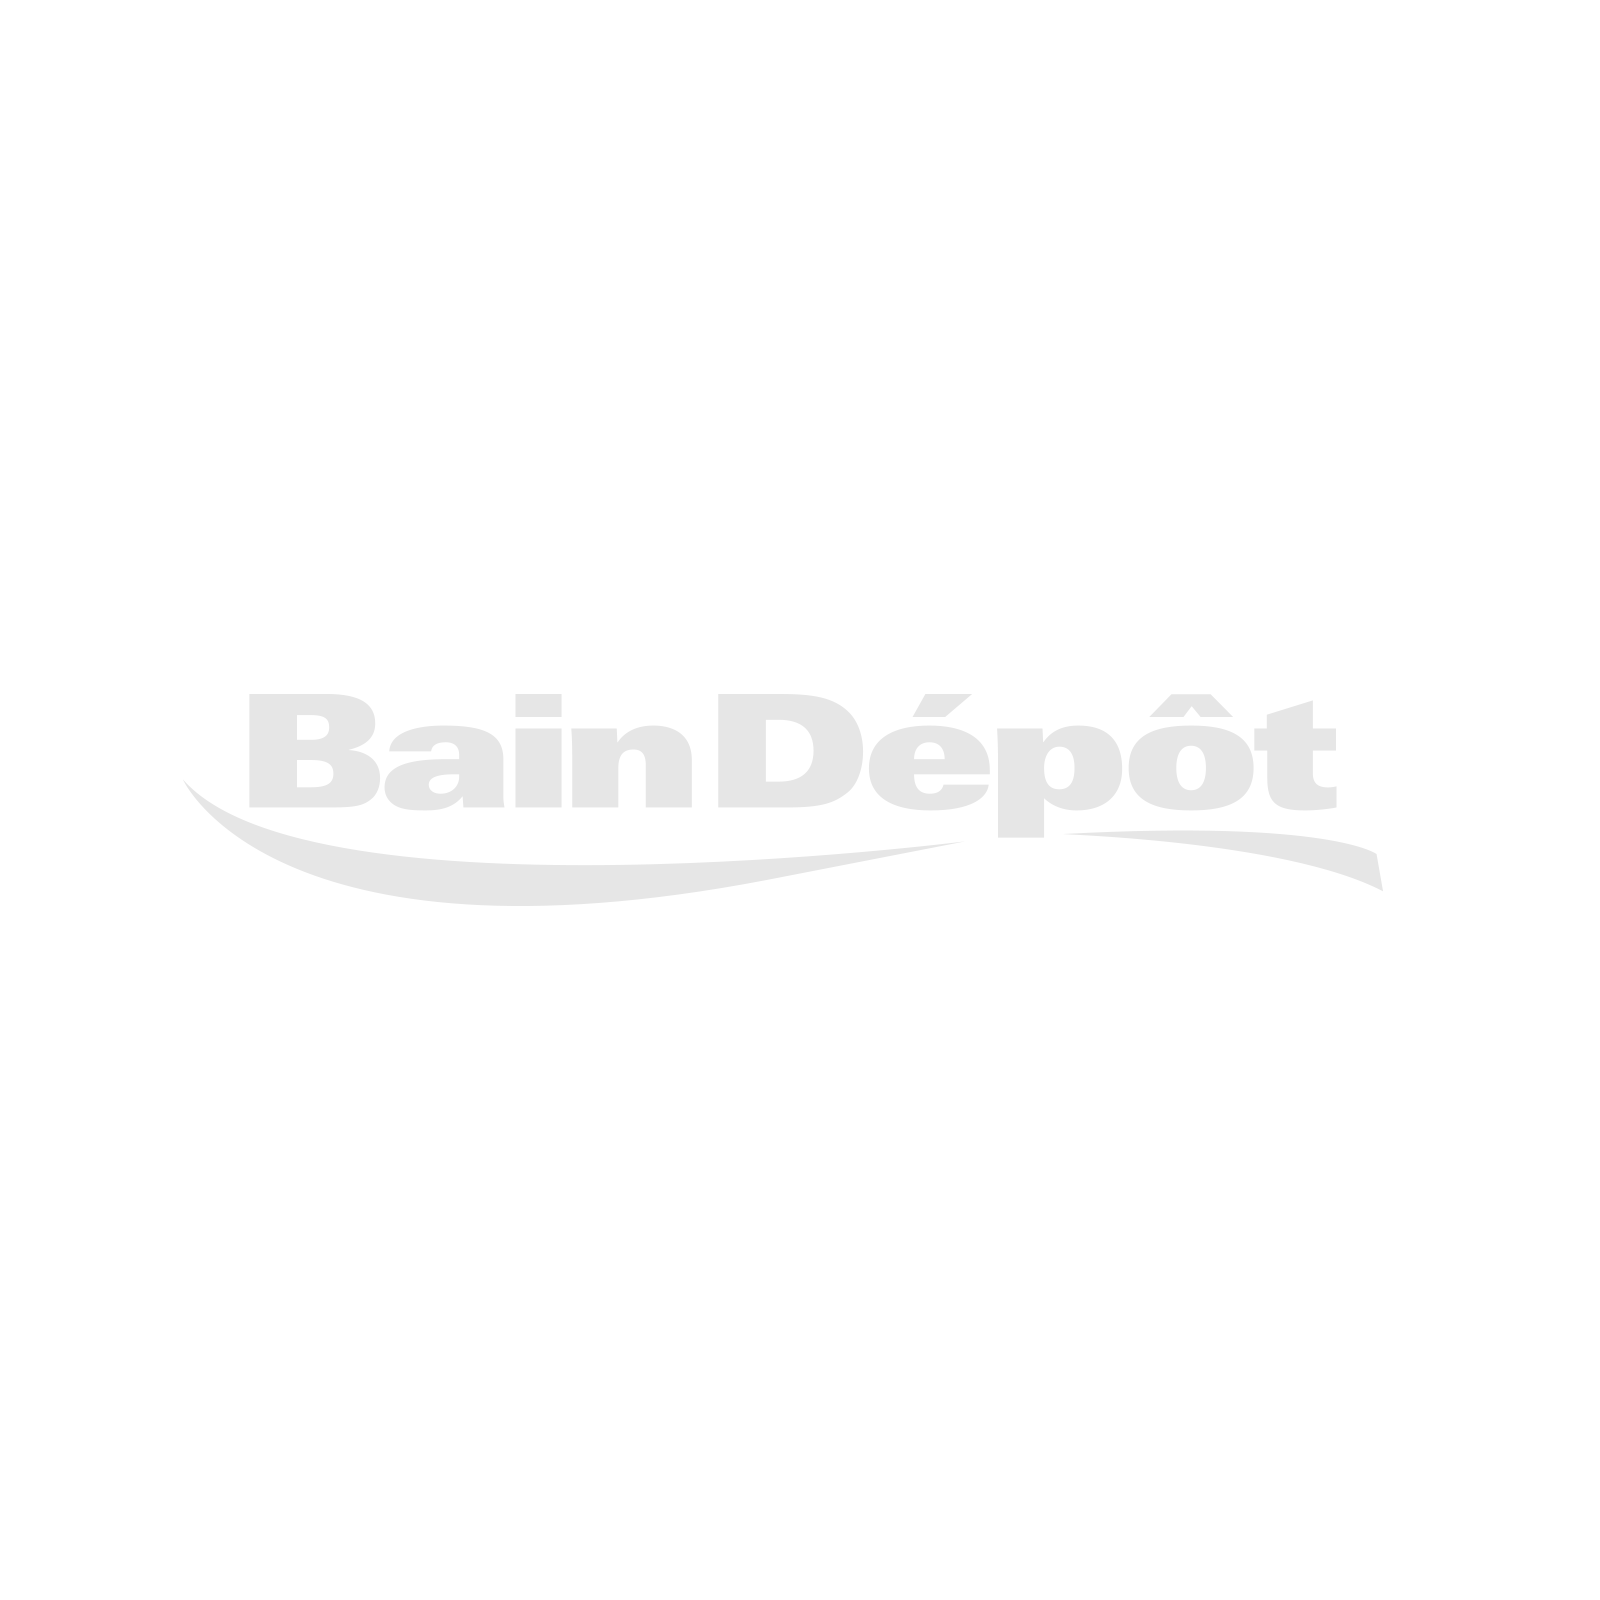 Toilet paper holder with integrated magazine holder